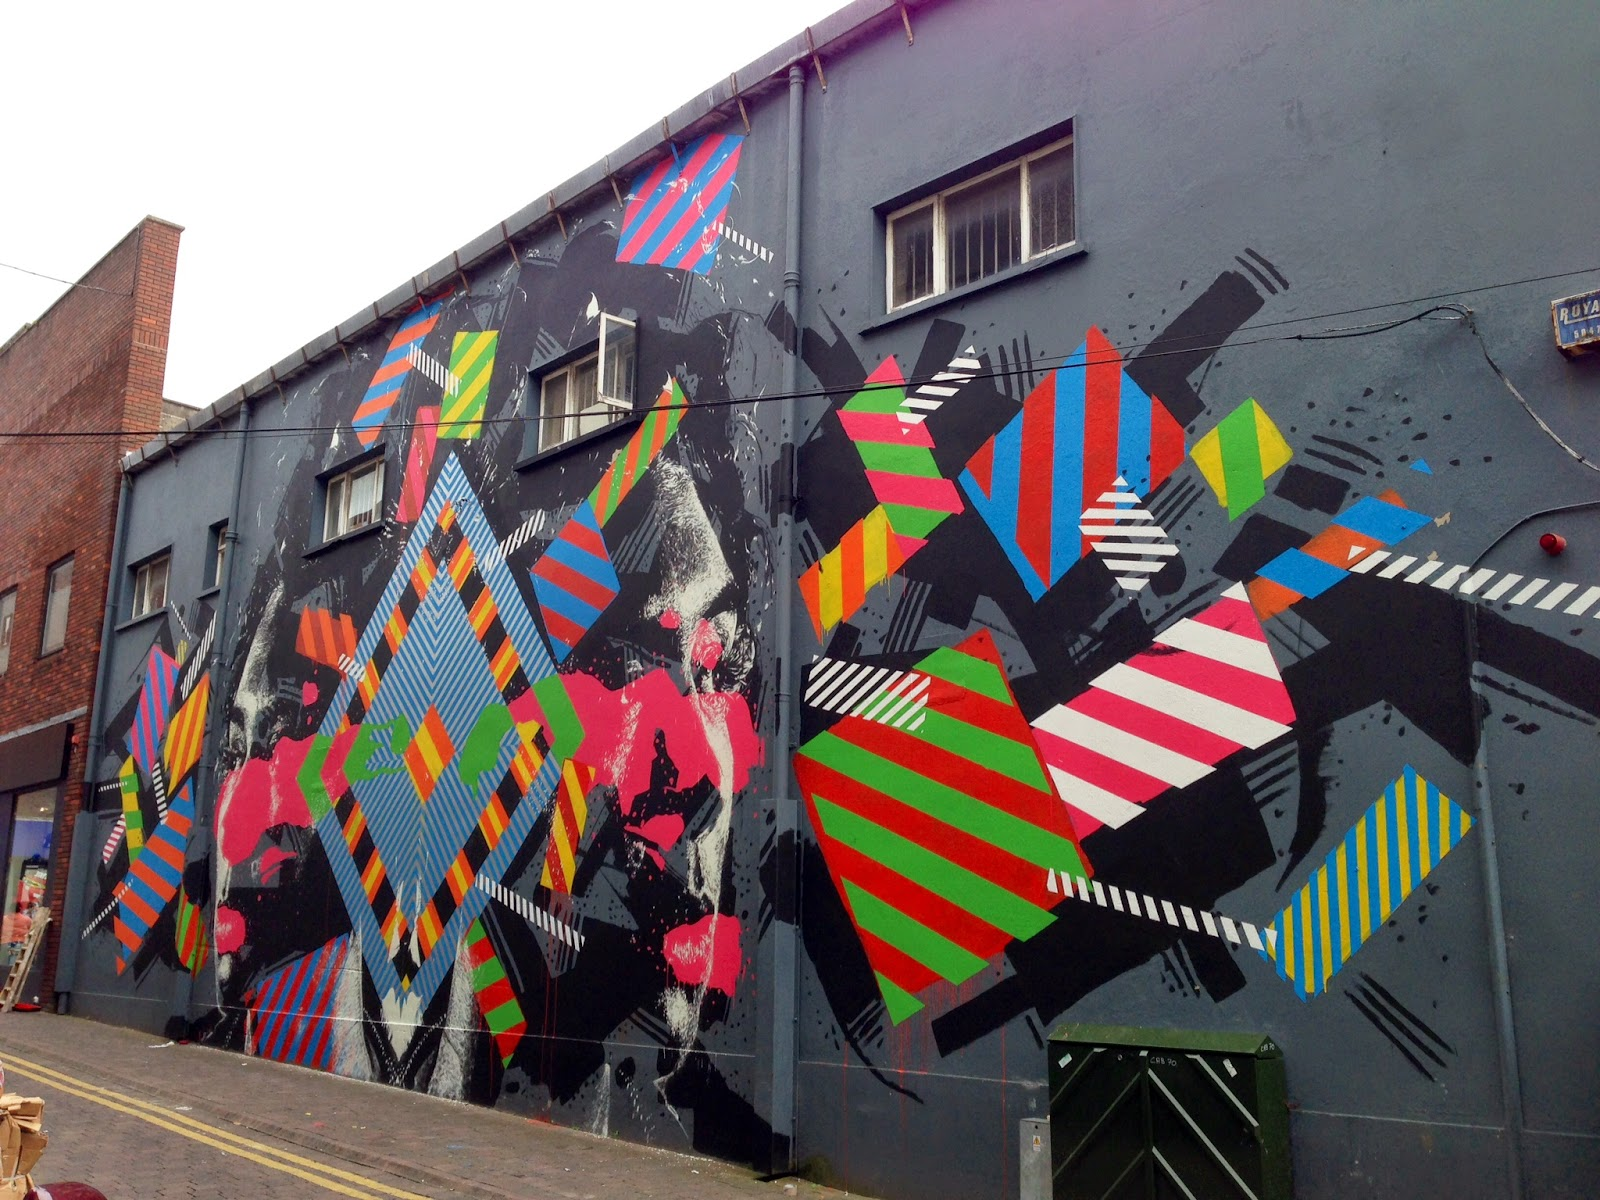 Maser and Askew were also in Ireland where they worked on this new collaboration somewhere on the streets of Limerick for the Draw Out Street Art Festival.